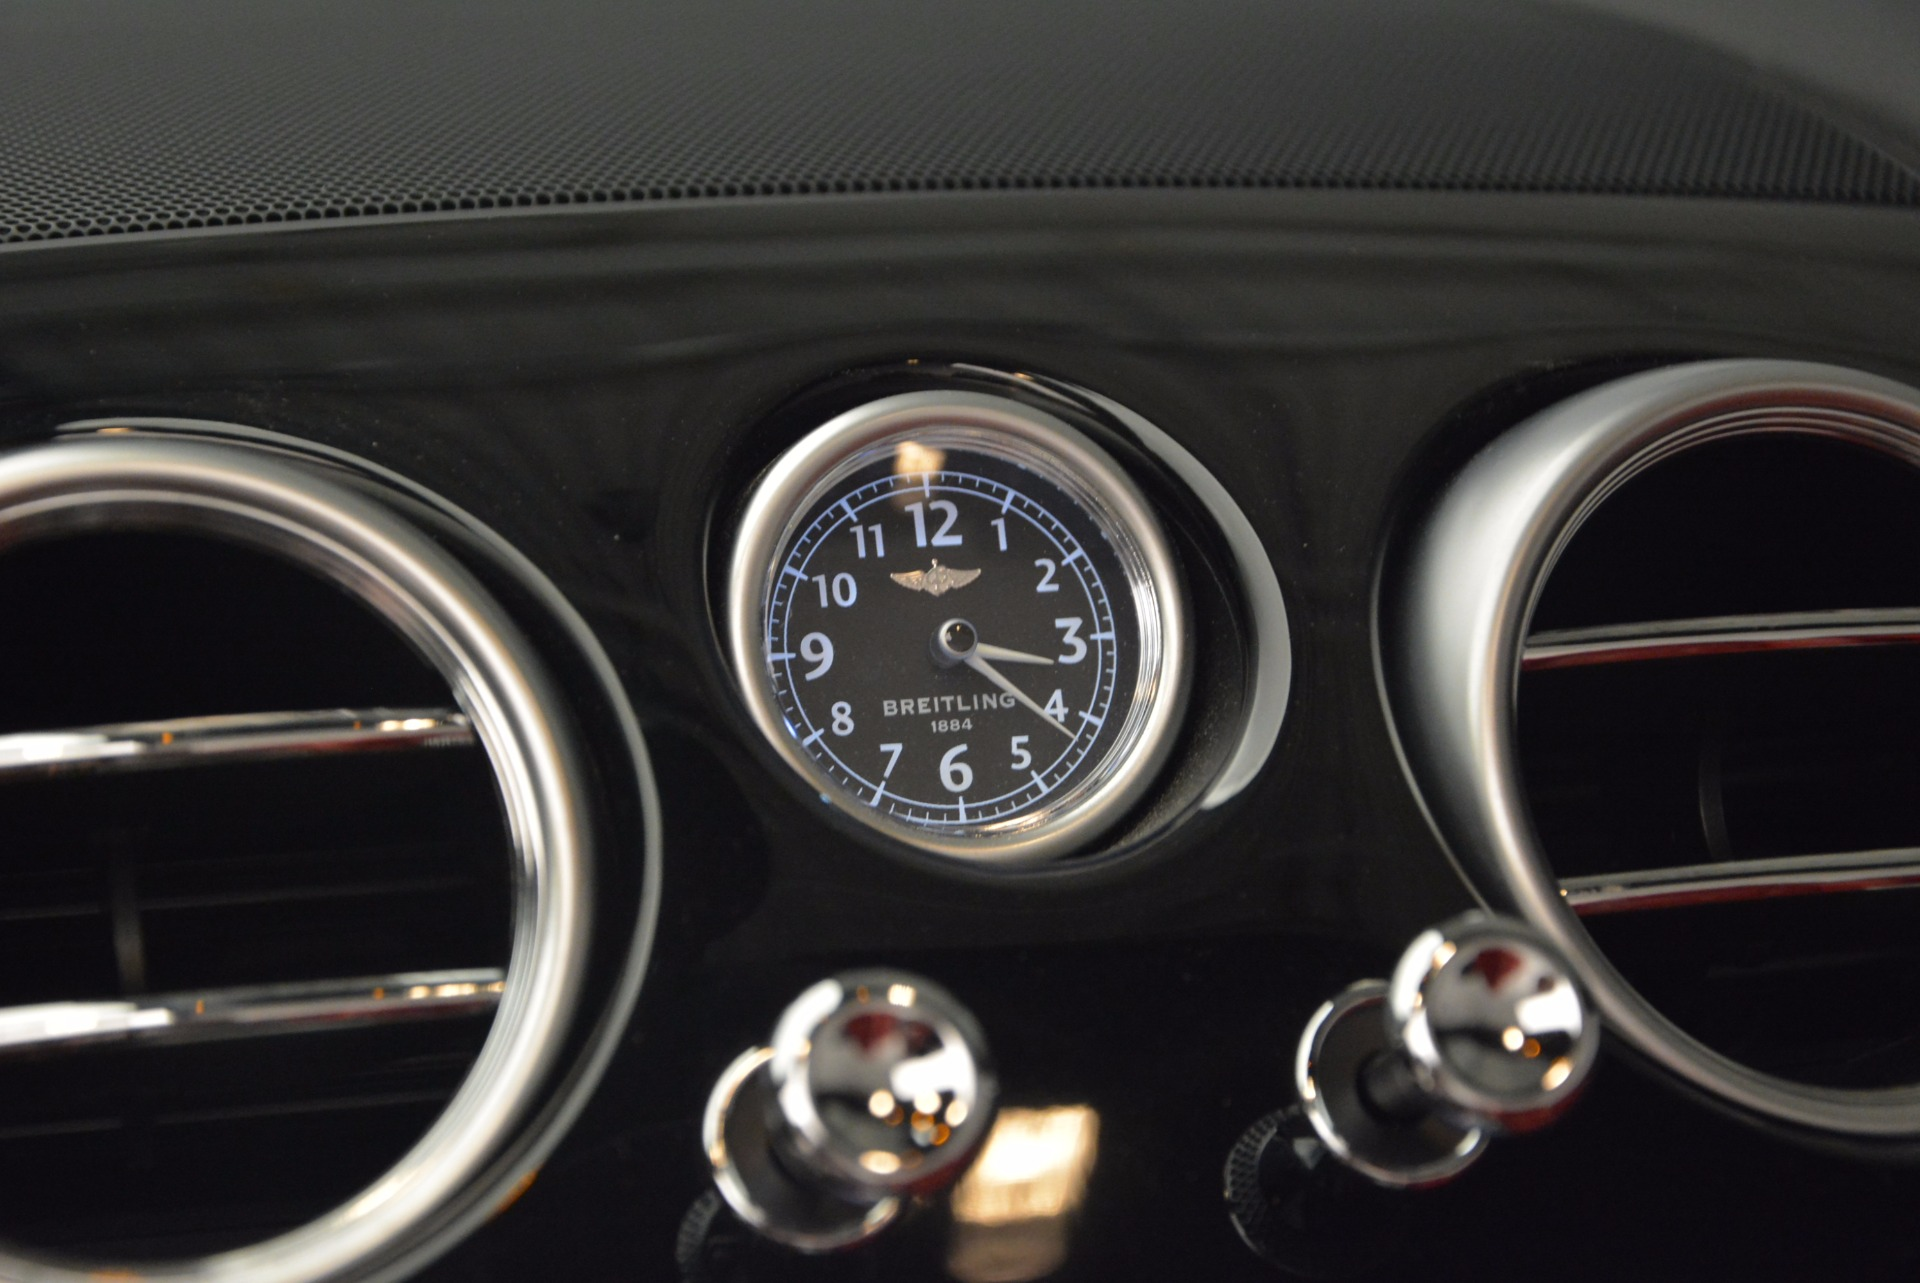 Used 2010 Bentley Continental GT Speed For Sale In Greenwich, CT 1298_p35